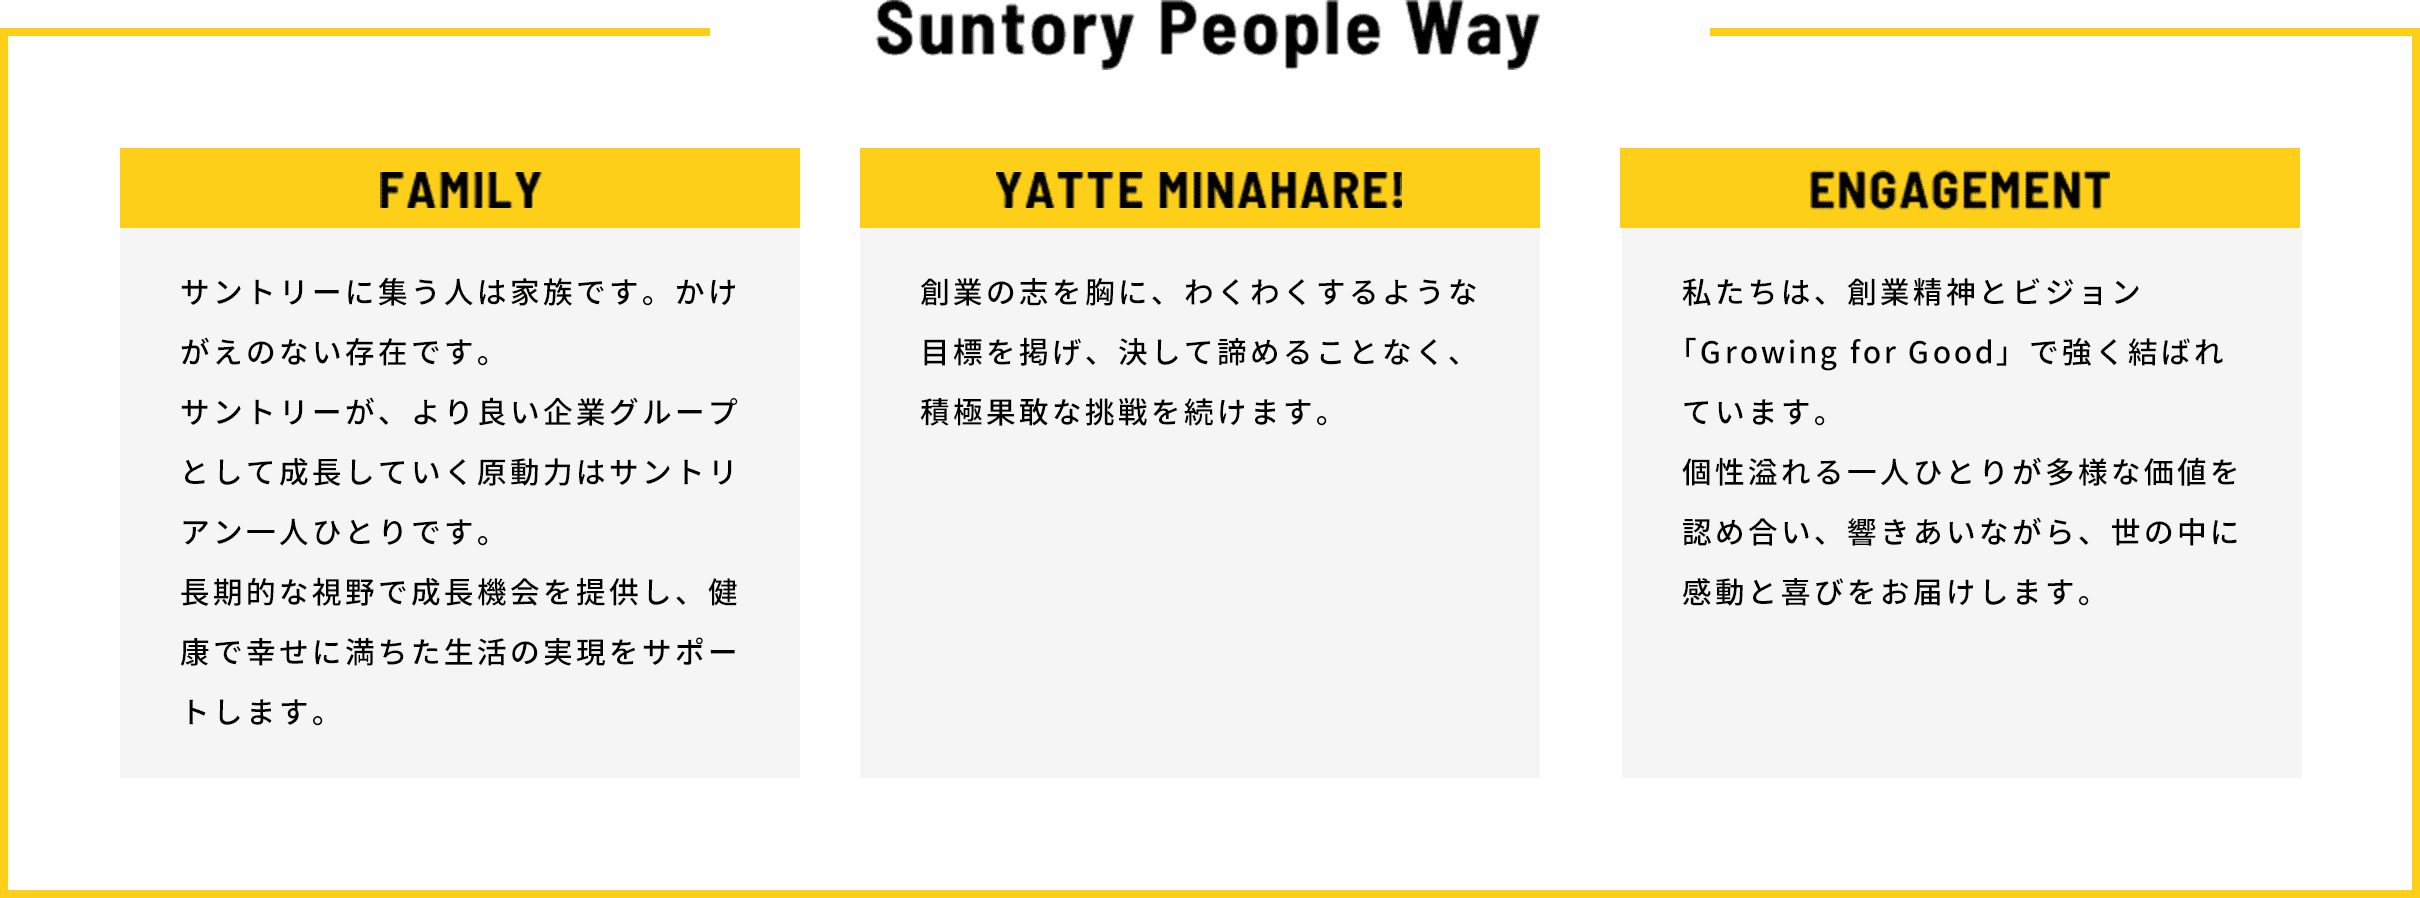 Suntory People Way